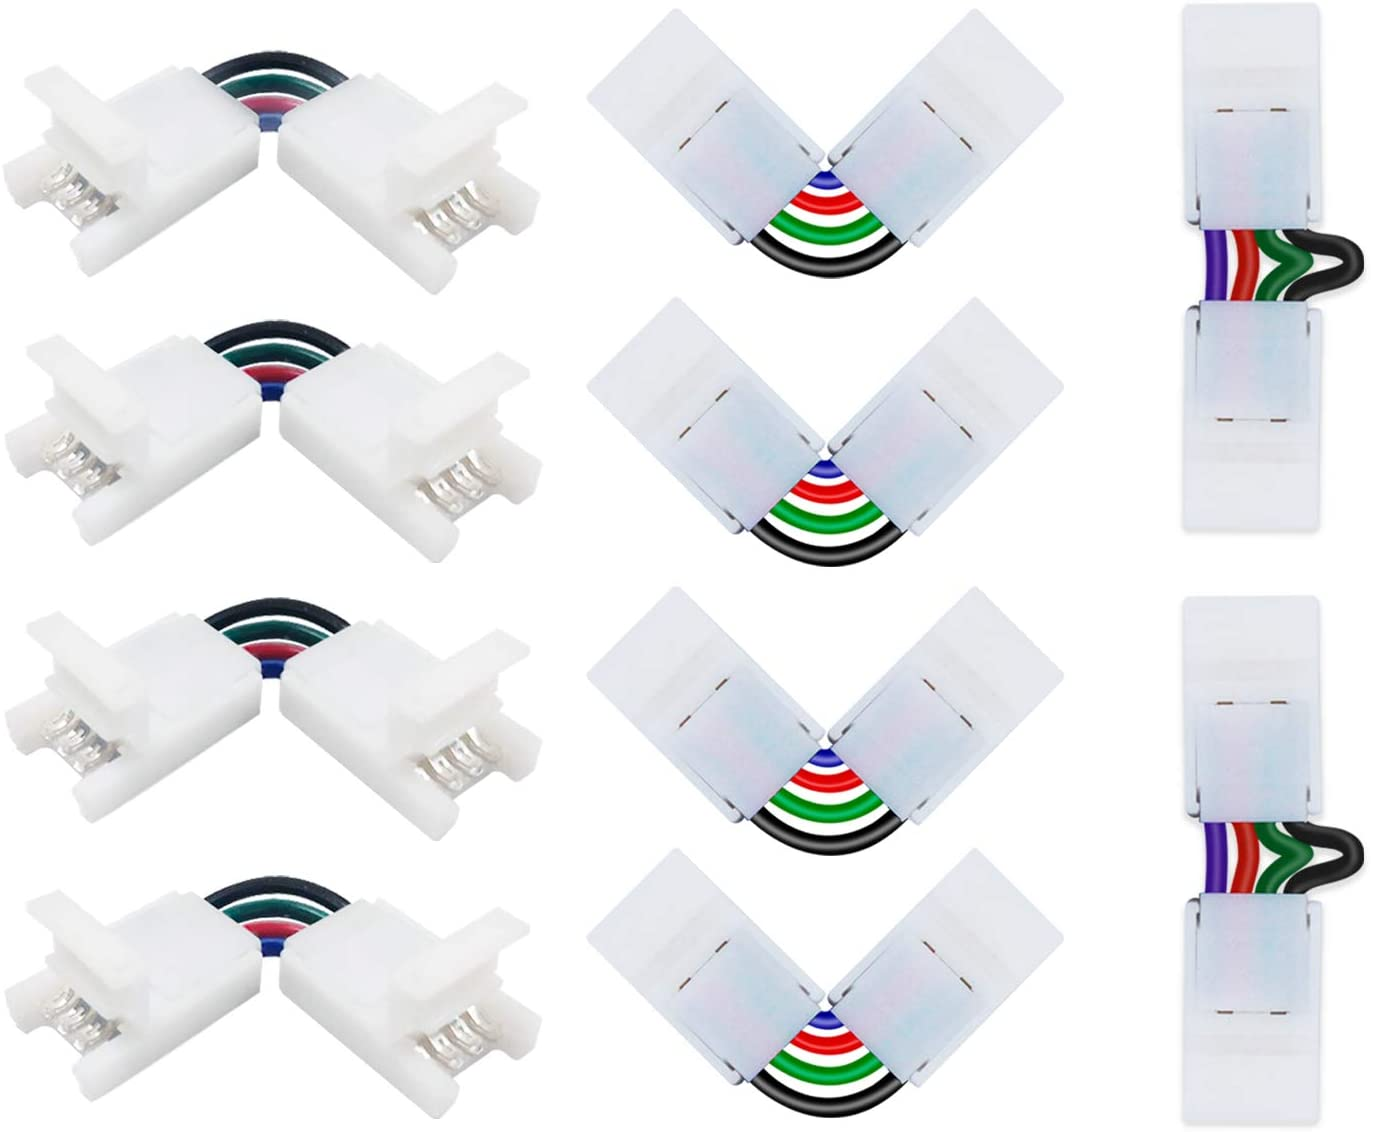 2 T Shape connectors for SMD Strip 10 New Angle Adjustable 4Pin L Shape connectors RGB Led Light Strip Connectors- Includes 6 10mm Gapless Connectors 18 Pcs